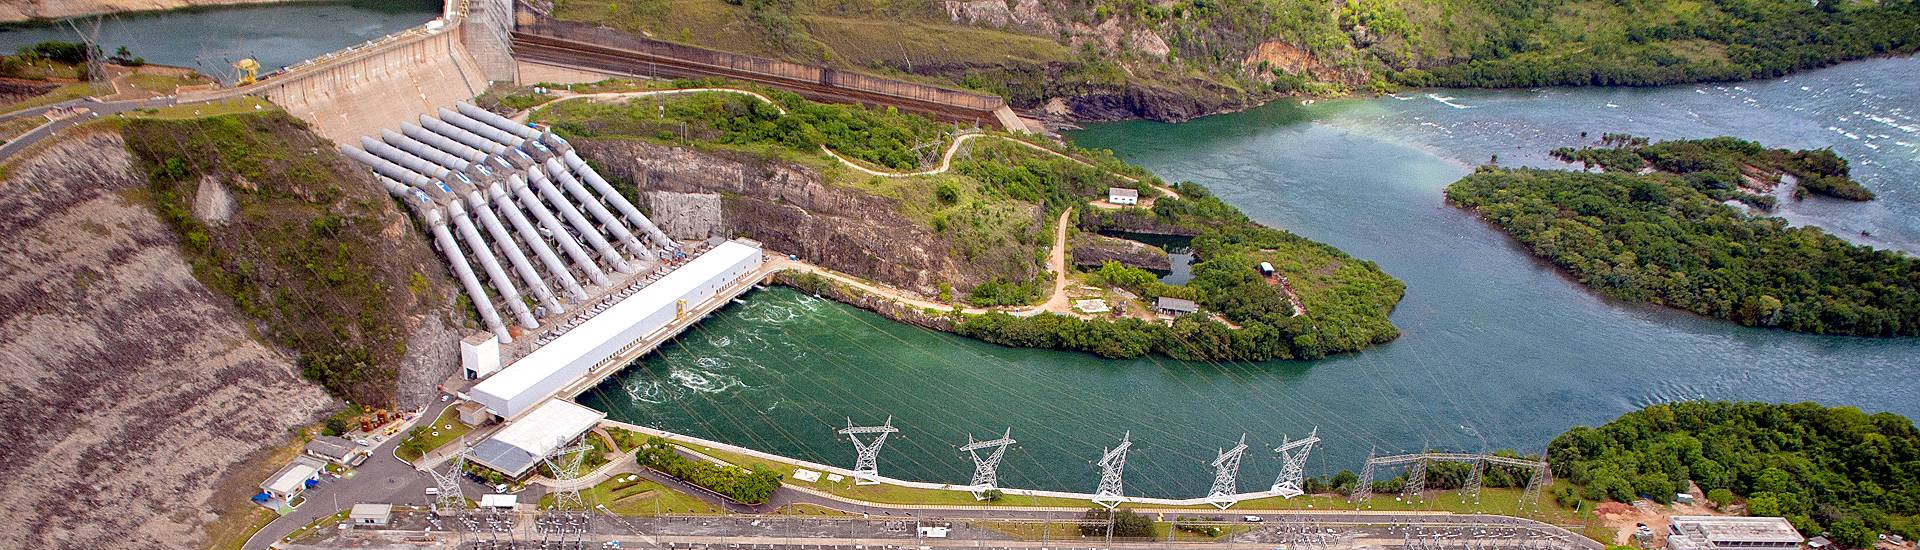 Usina de Furnas - 1.216 MW